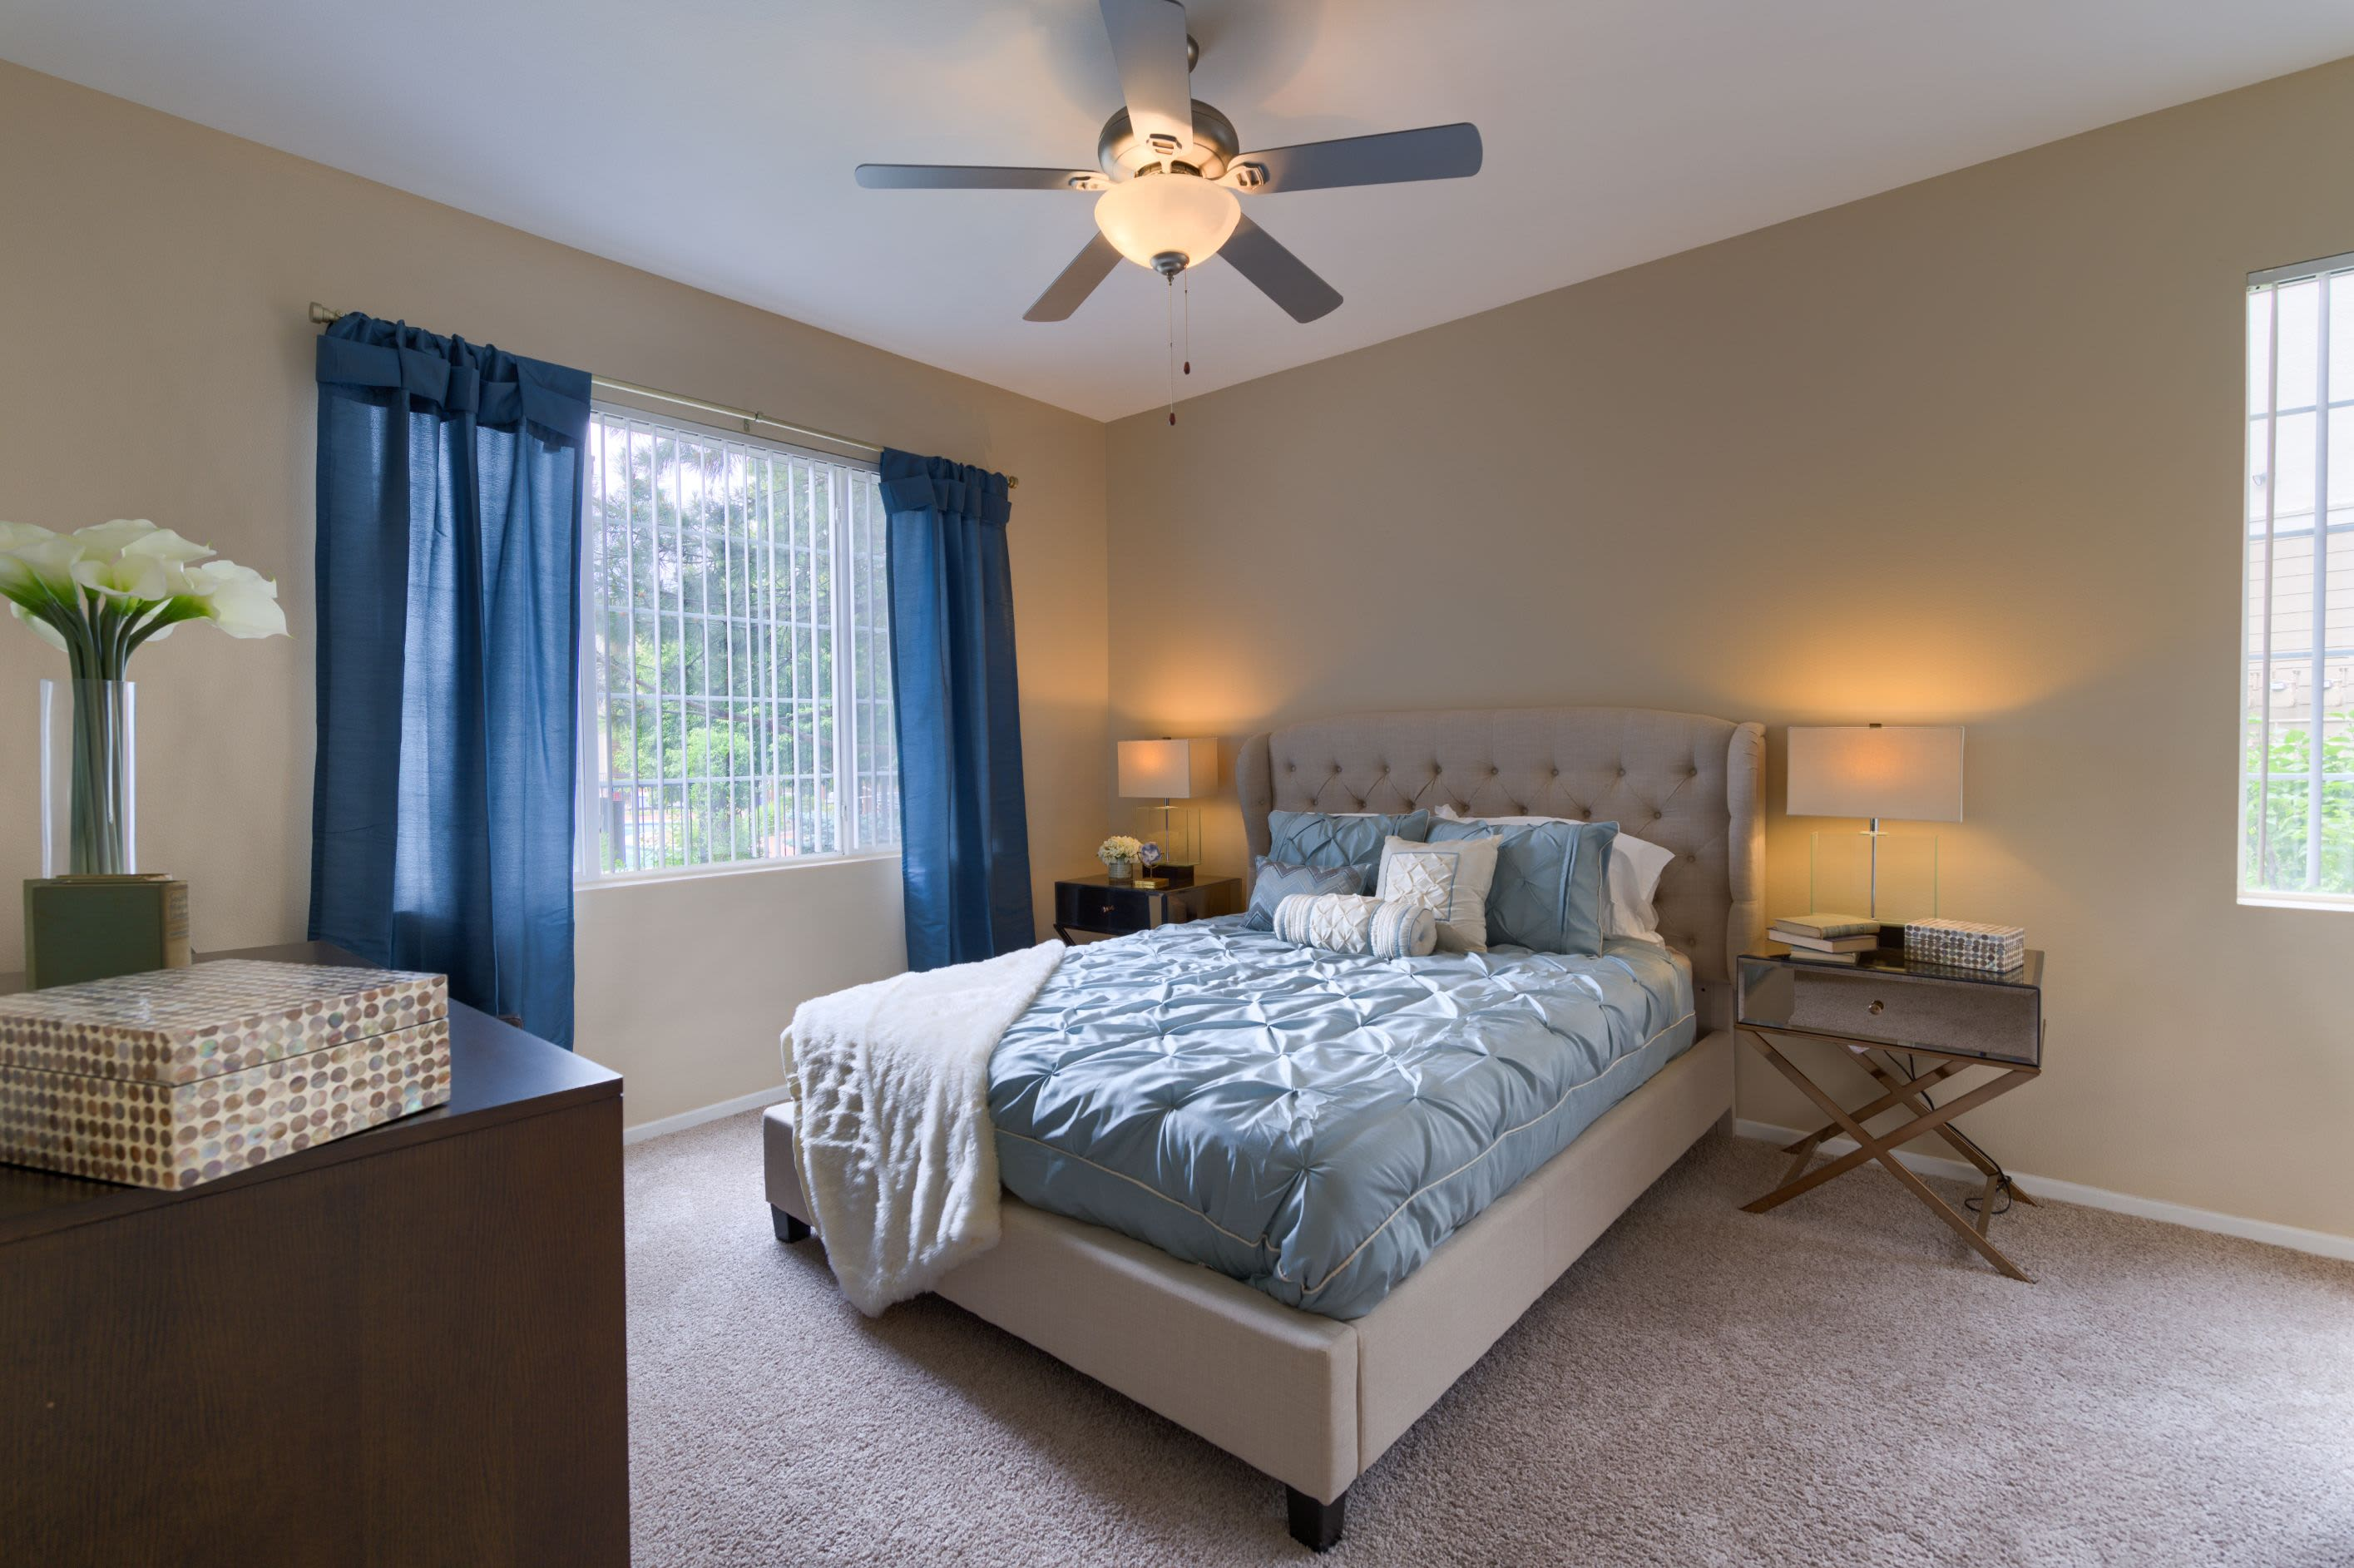 Bedroom with ceiling fan at Whisper Creek Apartment Homes in Lakewood, Colorado